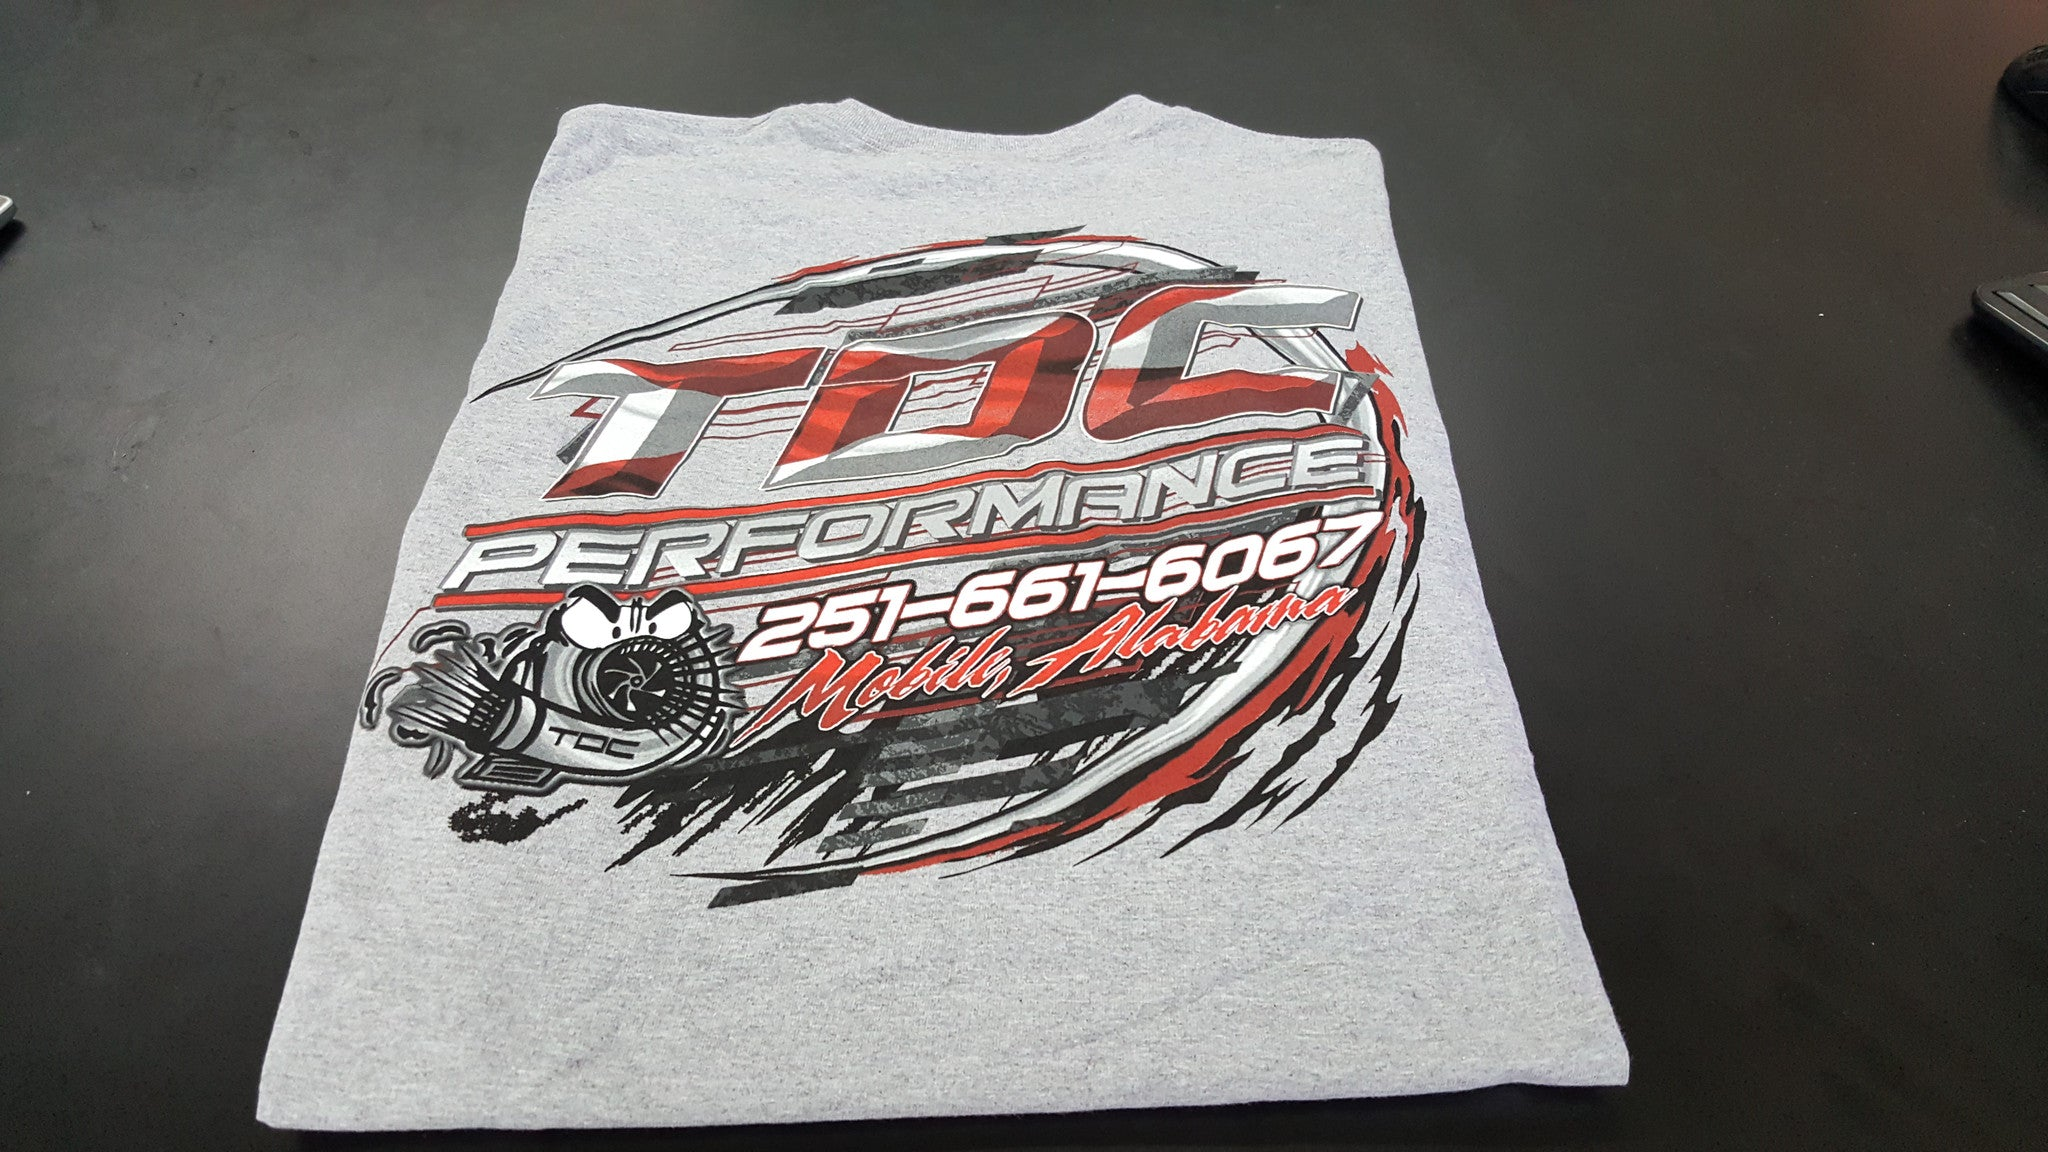 TDC Performance T-Shirt